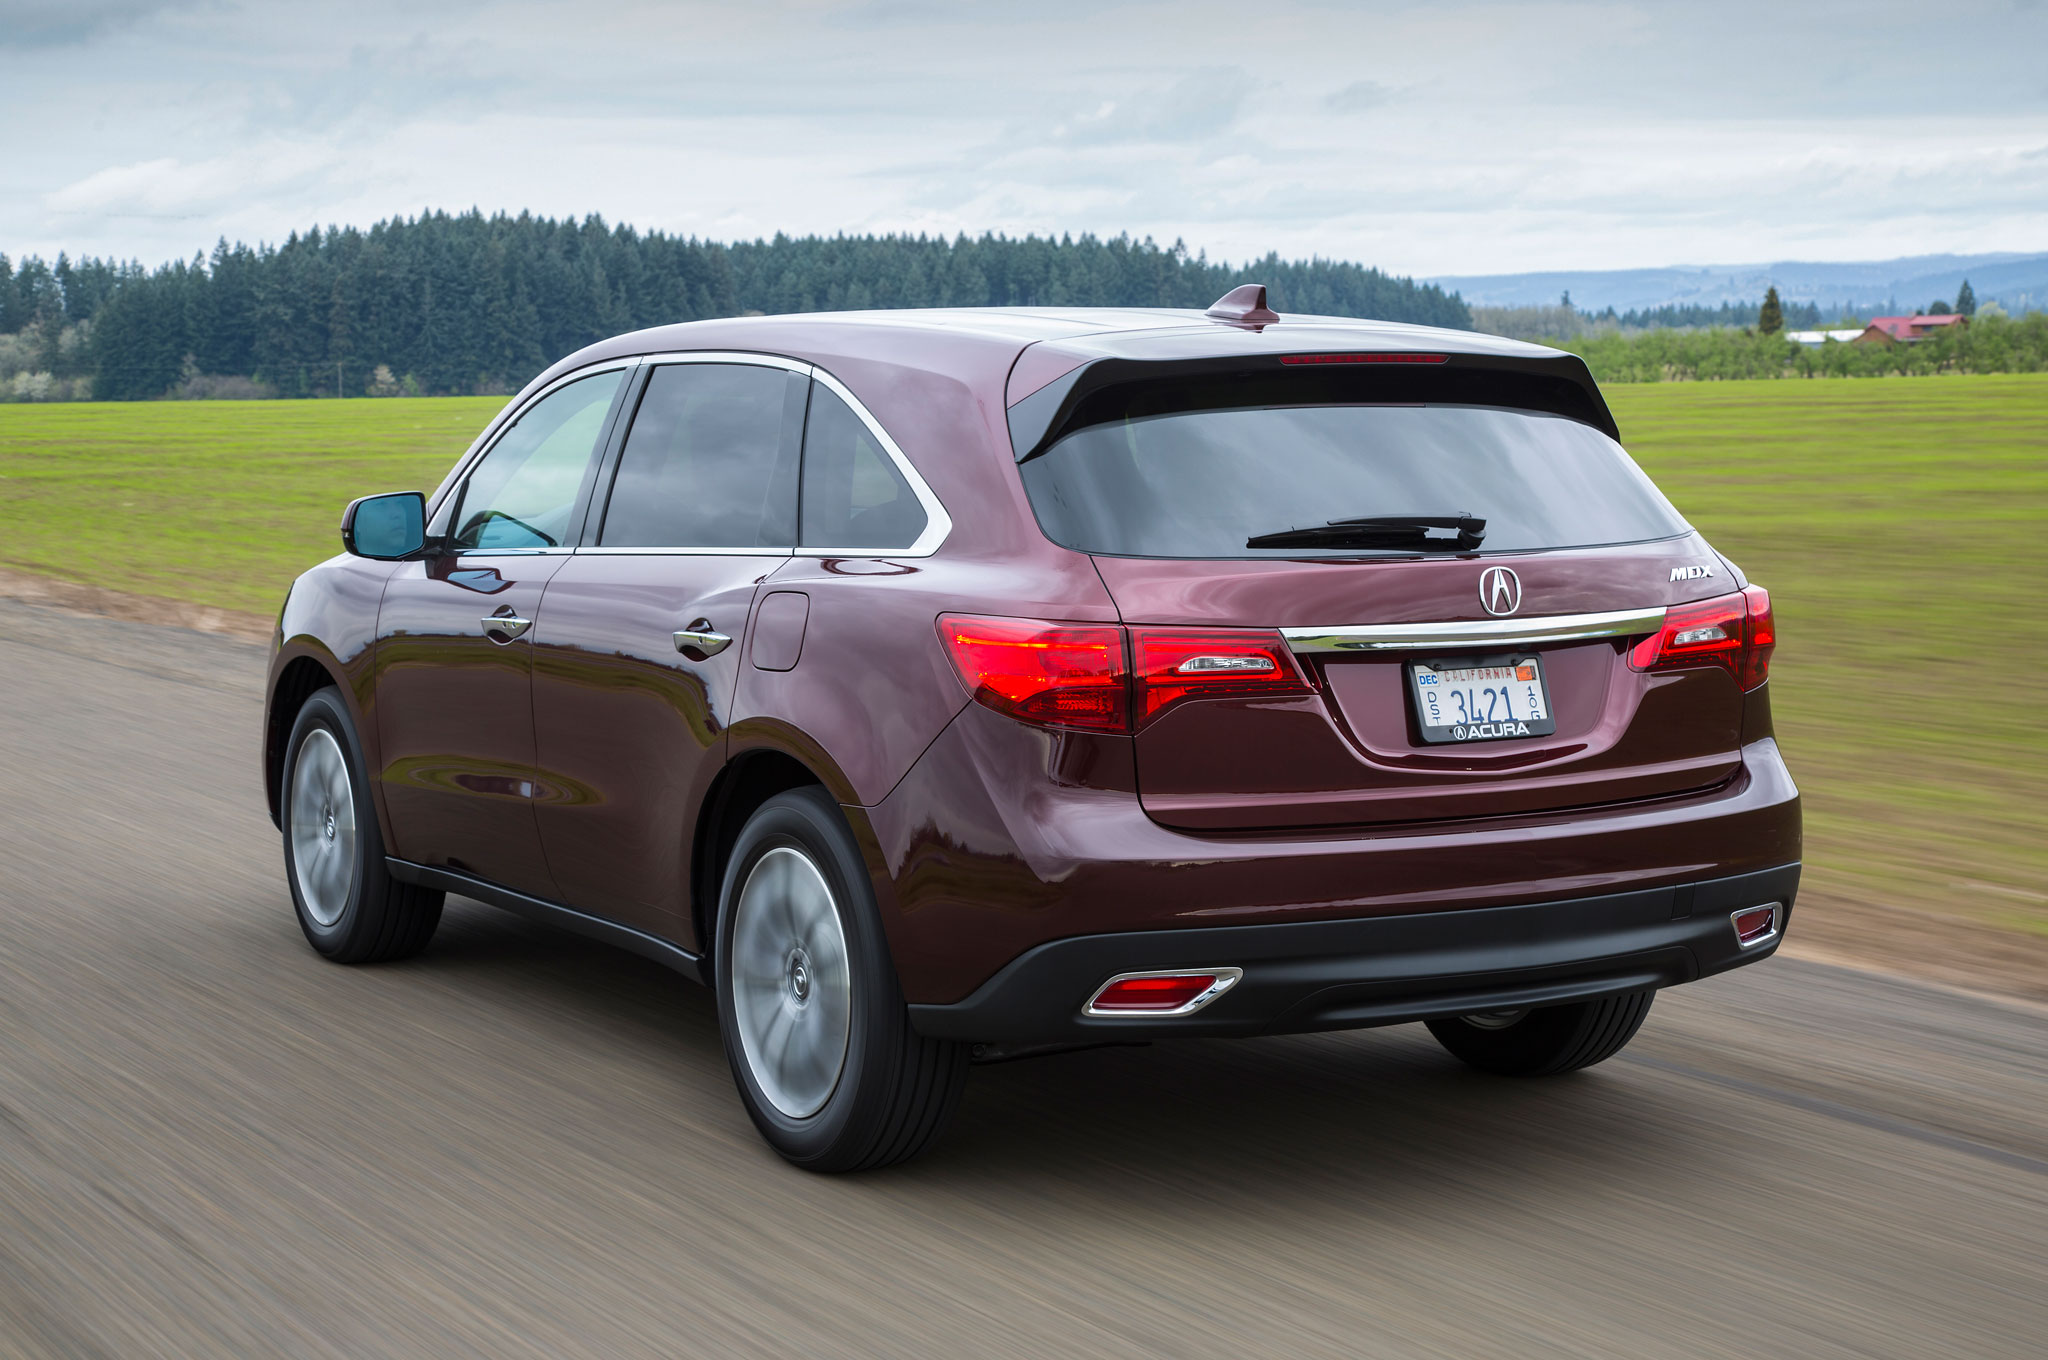 2016 Acura Mdx Updated With Nine Speed Automatic New Tech Features 2002 Transmission Rear Three Quarter In Motion 02